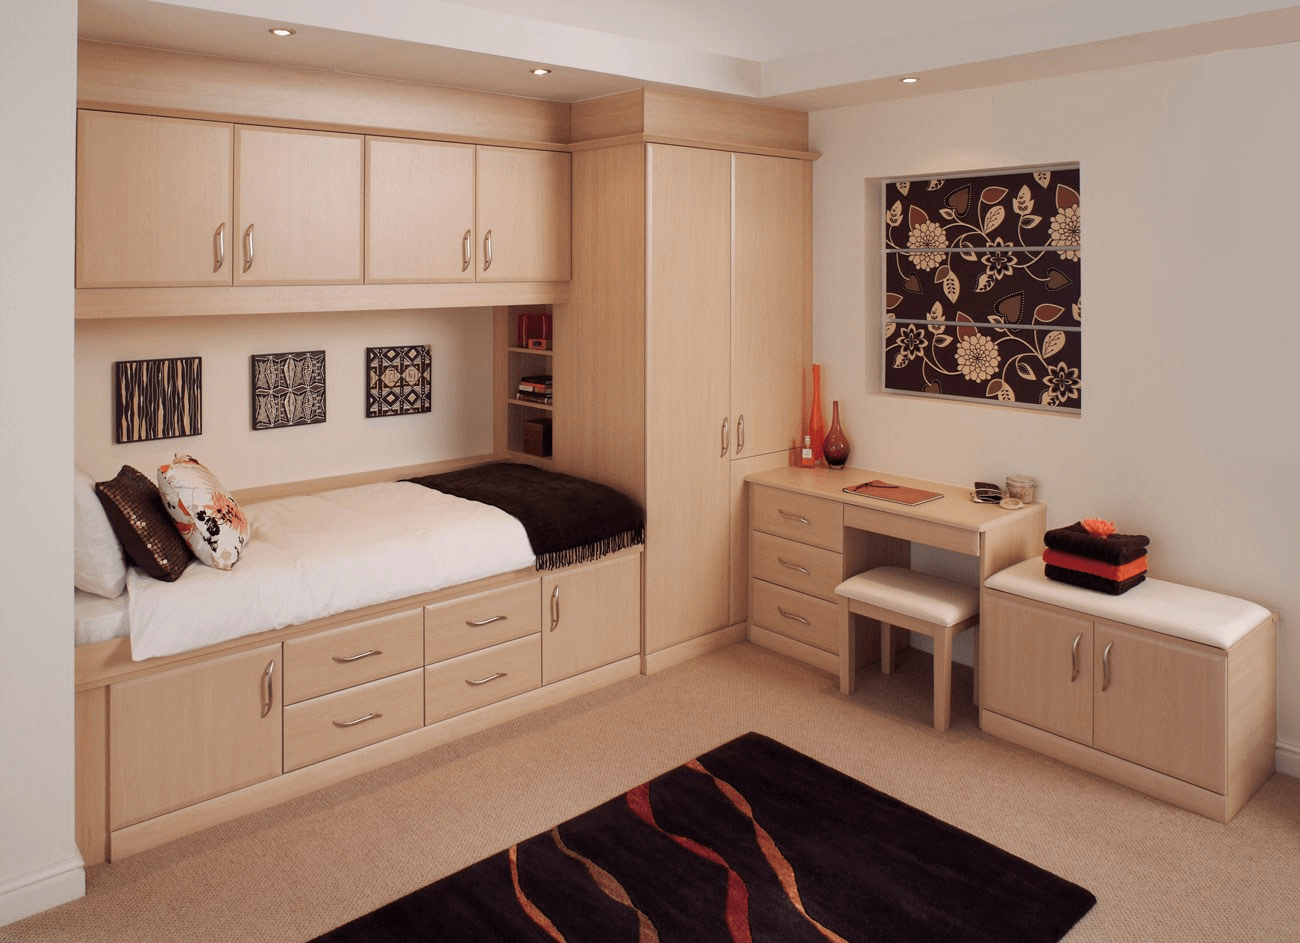 Build In Storage Furniture Set For Small Bedroom Fitted Bedroom Furniture Fitted Bedrooms Small Apartment Bedrooms